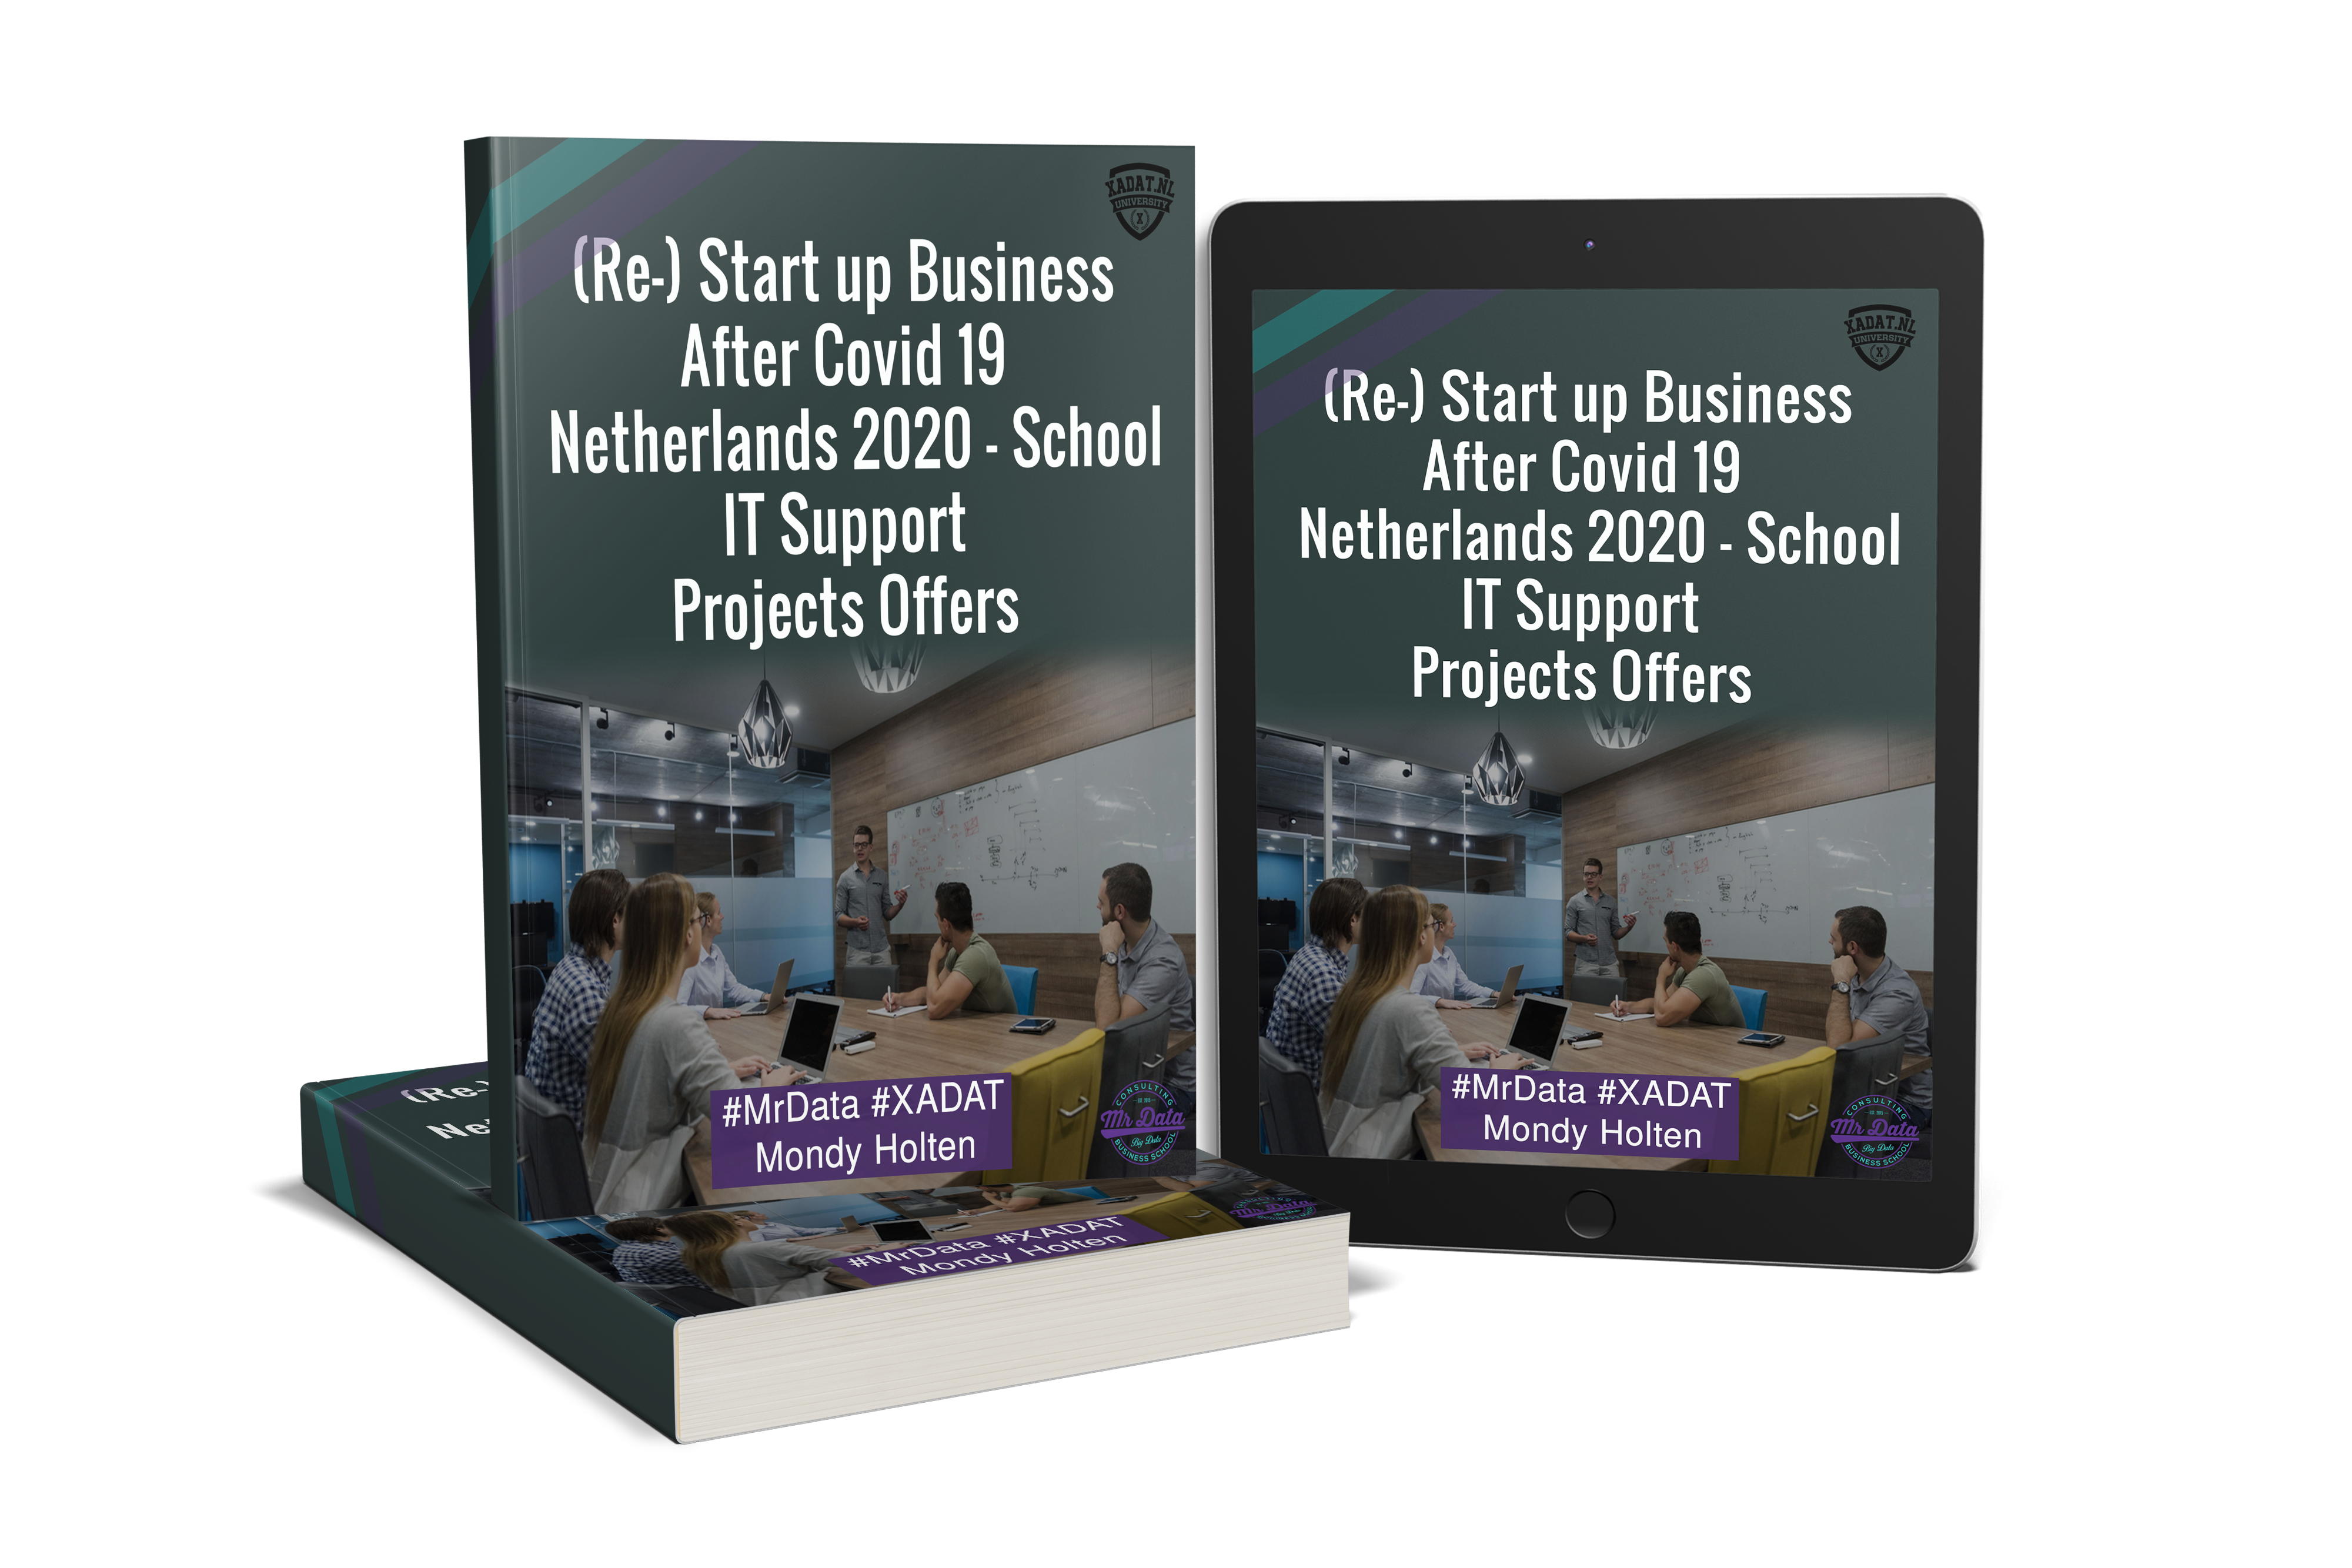 business-ideas-to-start-from-home-during-covid-19